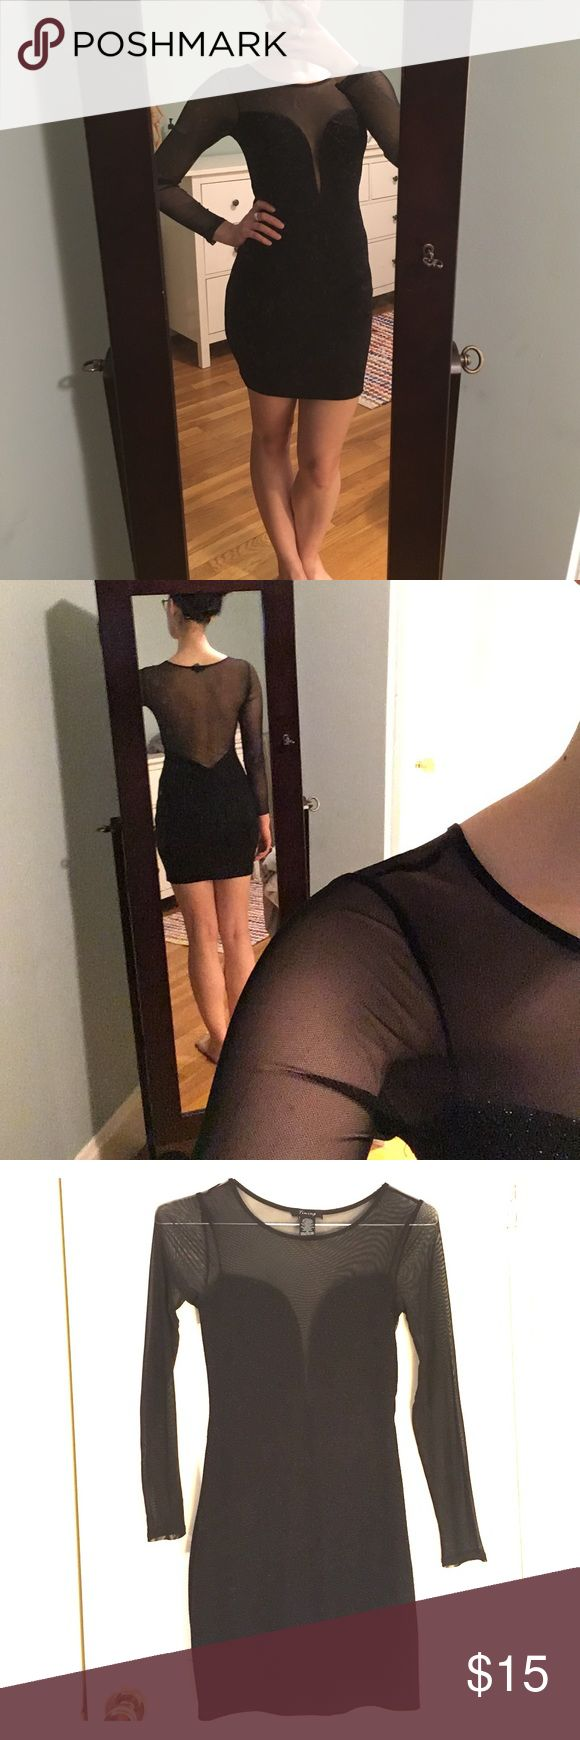 Sexy Shimmer & Mesh Bodycon Dress - Timing Perfect for the club! Only worn once. Very sexy, shimmery, long-sleeve black bodycon dress with low cut front and open back. Made less scandalous with black mesh illusion top, back, and sleeves. Has a soft lining inside the shimmer fabric. Sized at a medium. I usually wear a small and it fits well without being too snug. Stretchy fabric has plenty of give. ASOS Dresses Long Sleeve